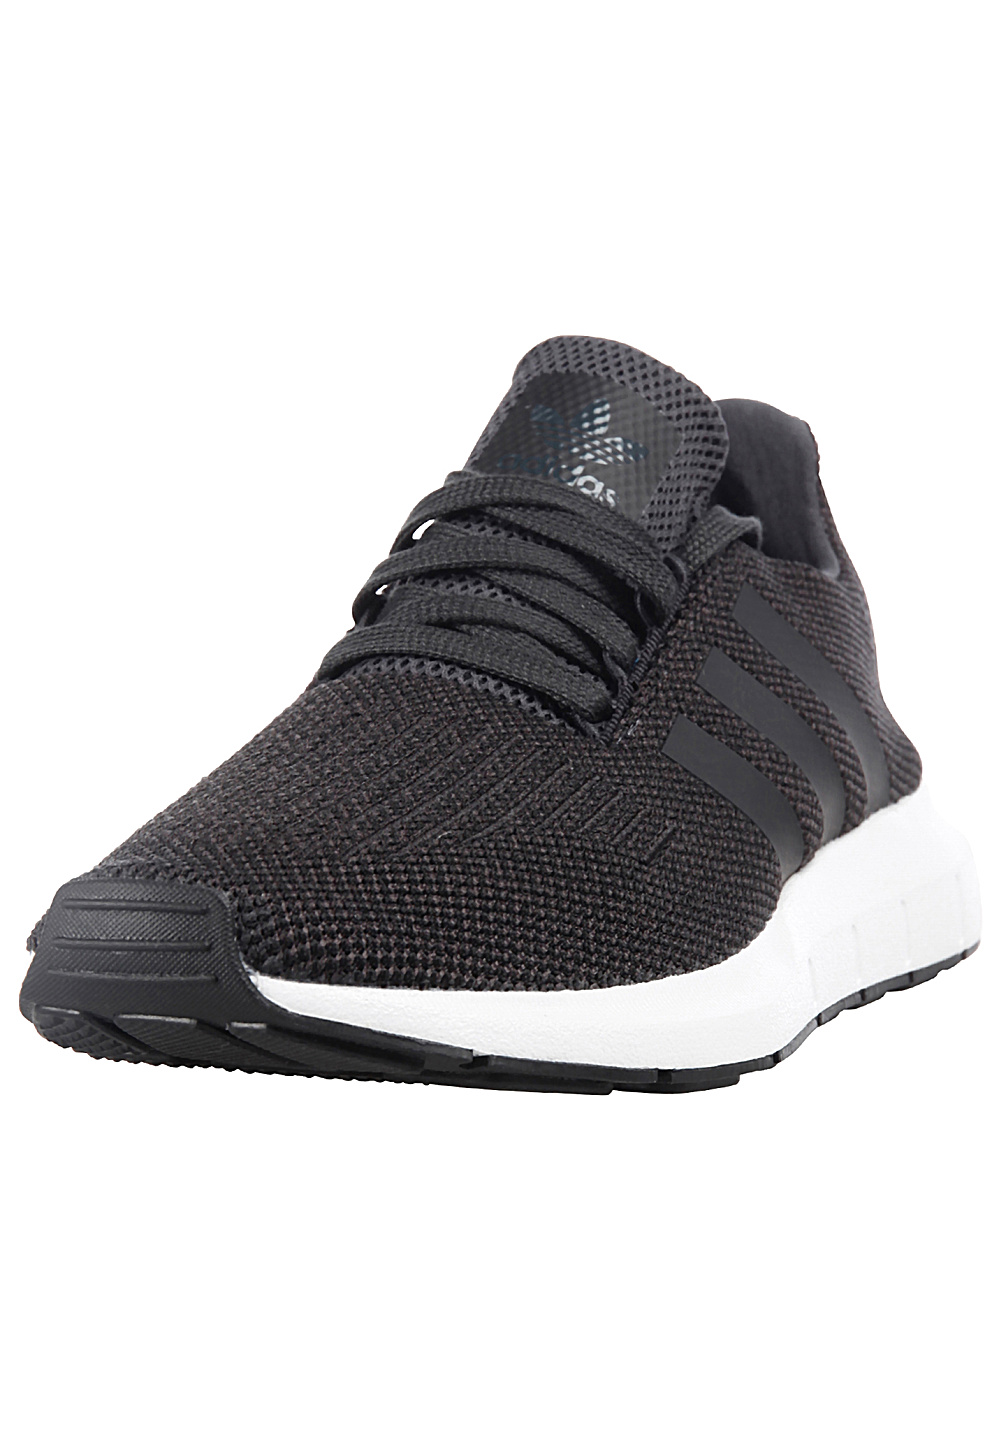 competitive price e44a9 0dd5f ... ADIDAS ORIGINALS Swift Run - Sneakers for Men - Black. Back to  Overview. 1  2  3  4  5  6. Previous